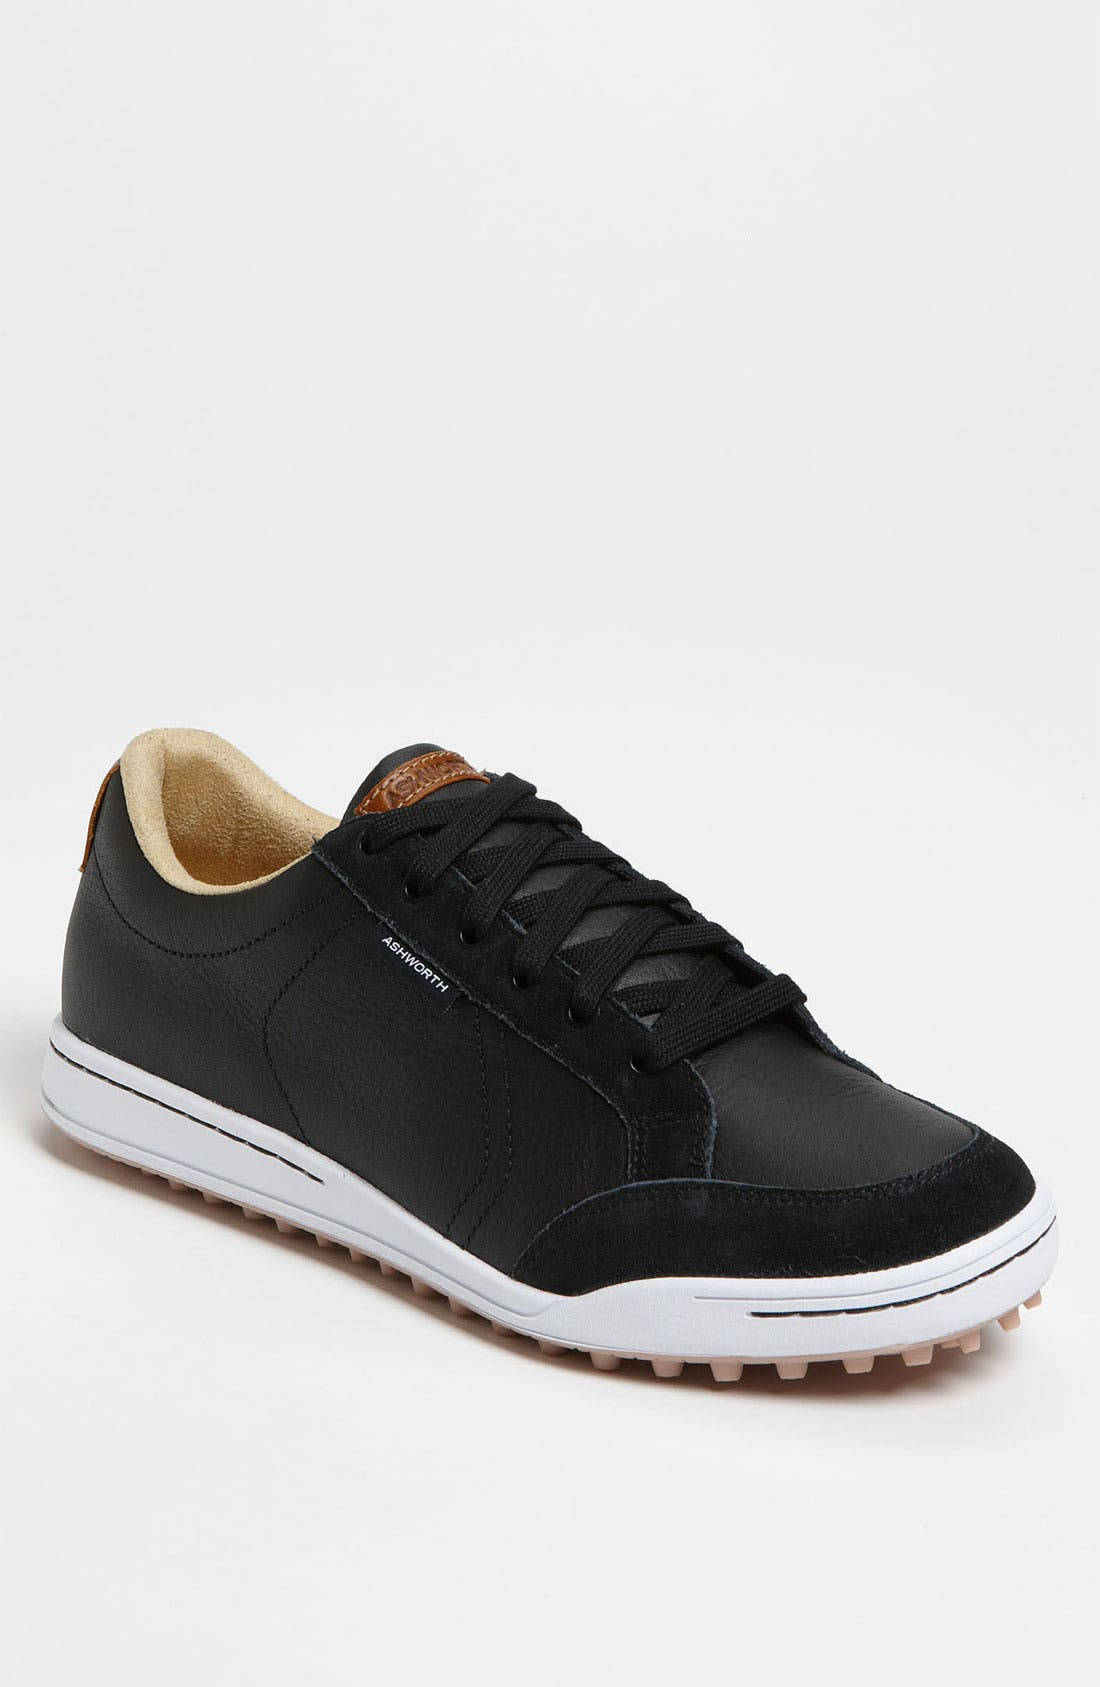 Main Image - Ashworth Golf 'Cardiff' Golf Shoe (Men) (Online Only)